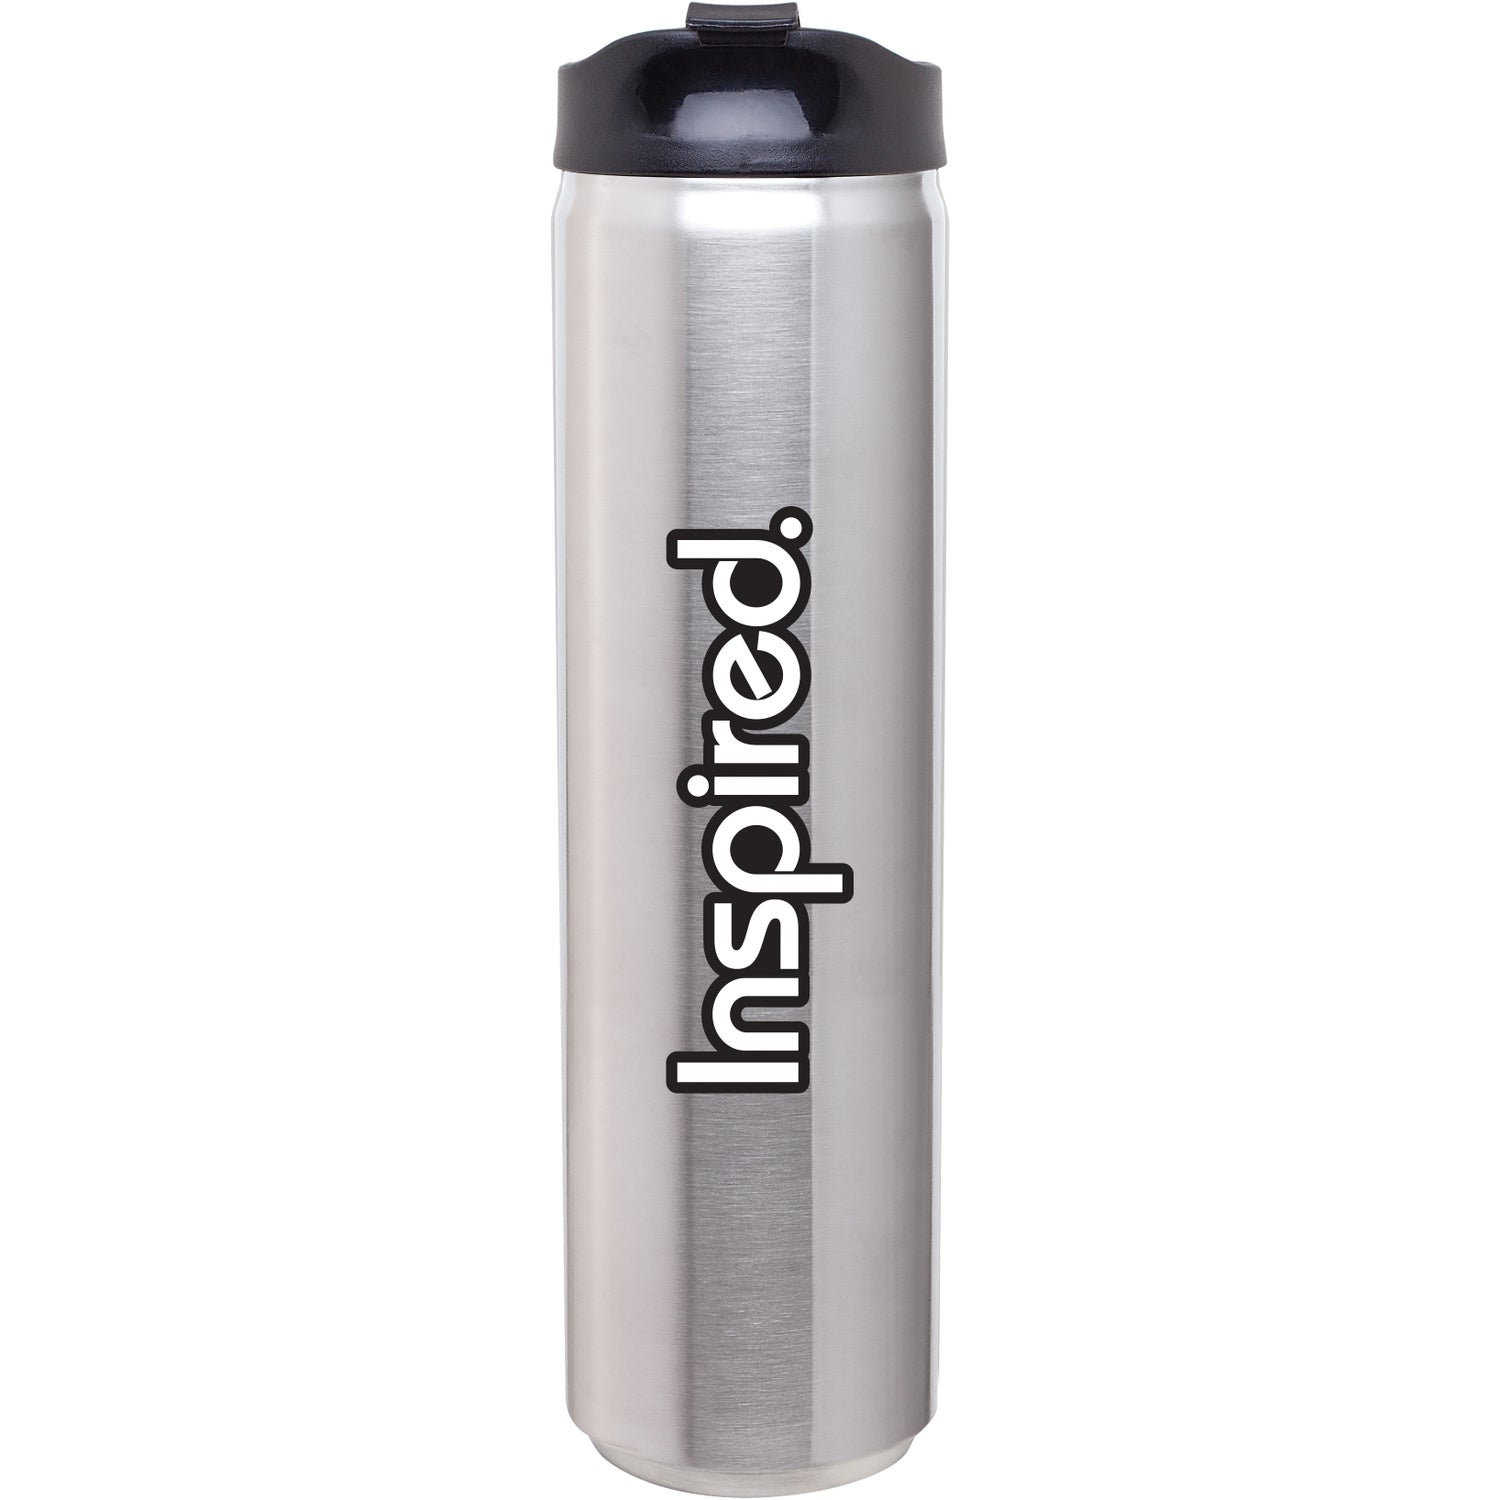 Stainless Steel Can Thermal Tumbler (20 Oz.)